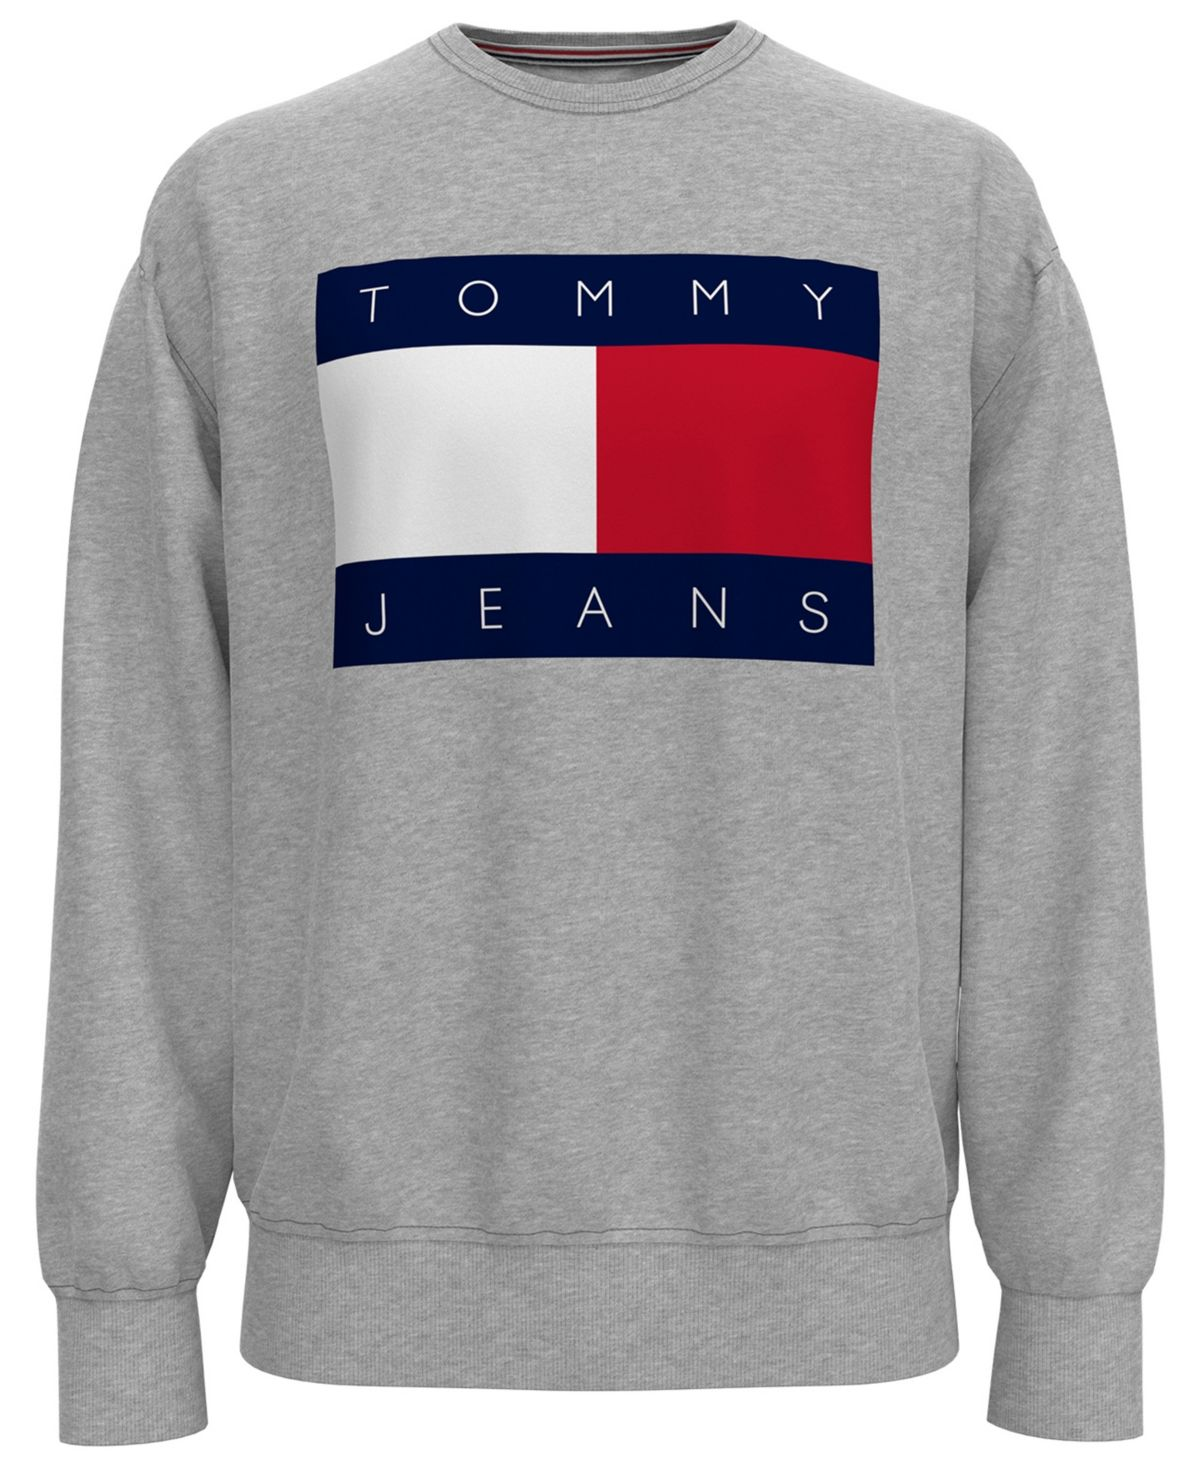 Tommy Hilfiger Tommy Hilfiger Men S Lucca Regular Fit Logo Graphic Sweatshirt Reviews Casual Button Down Shirts Men Macy S Tommy Jeans Sweatshirt Sweatshirts Graphic Sweatshirt [ 1467 x 1200 Pixel ]